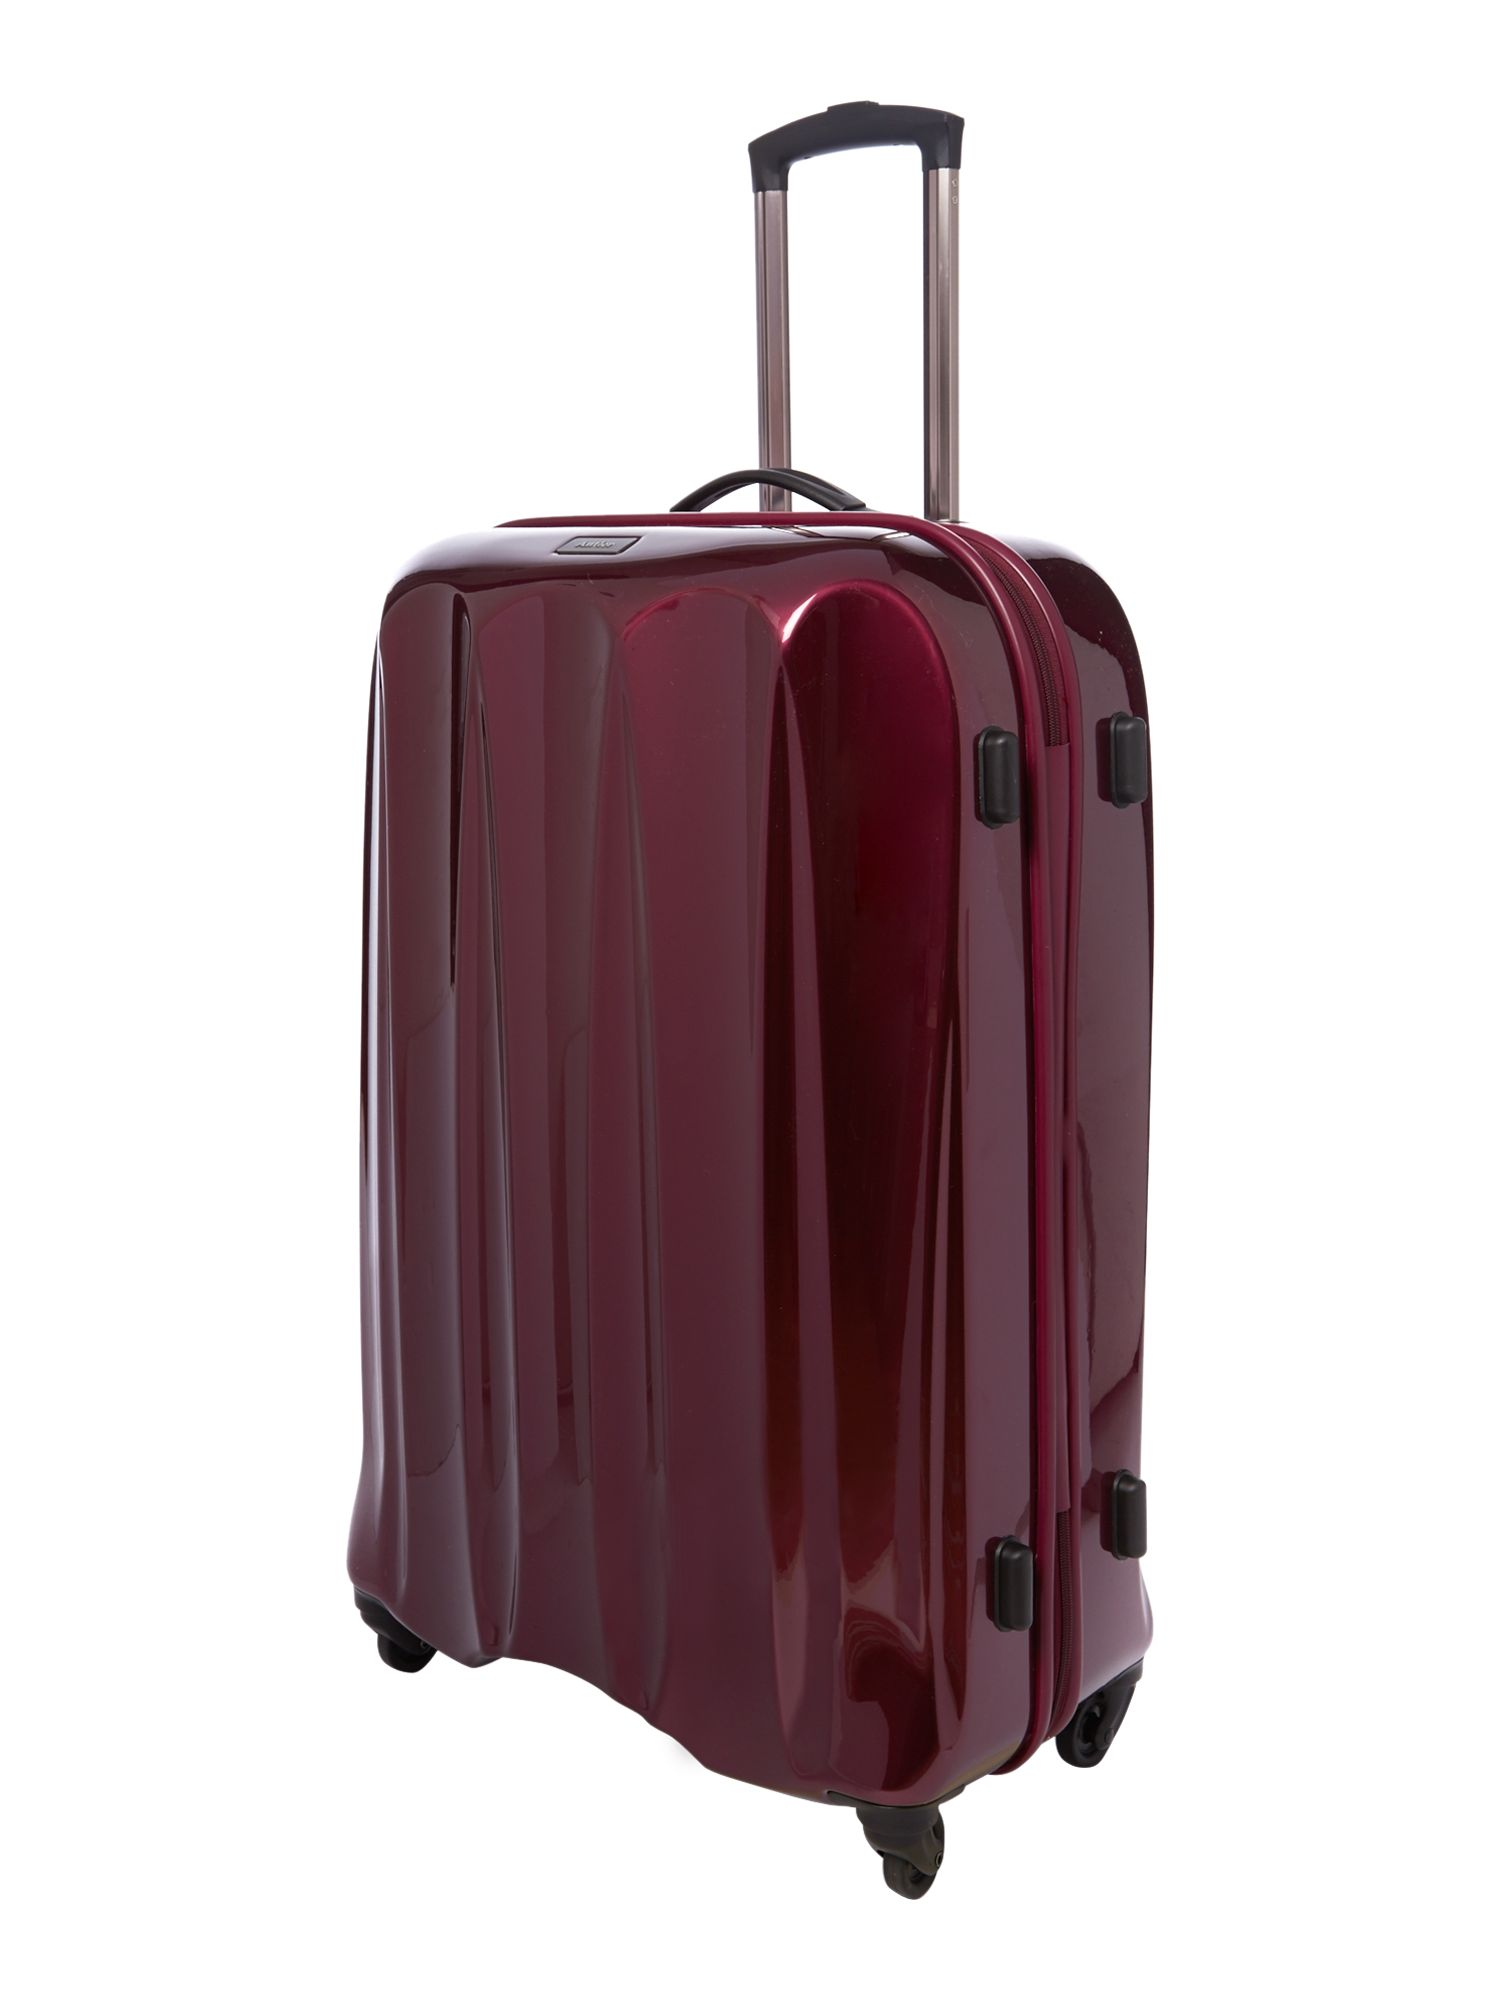 Tiber plum 4 wheel soft large rollercase